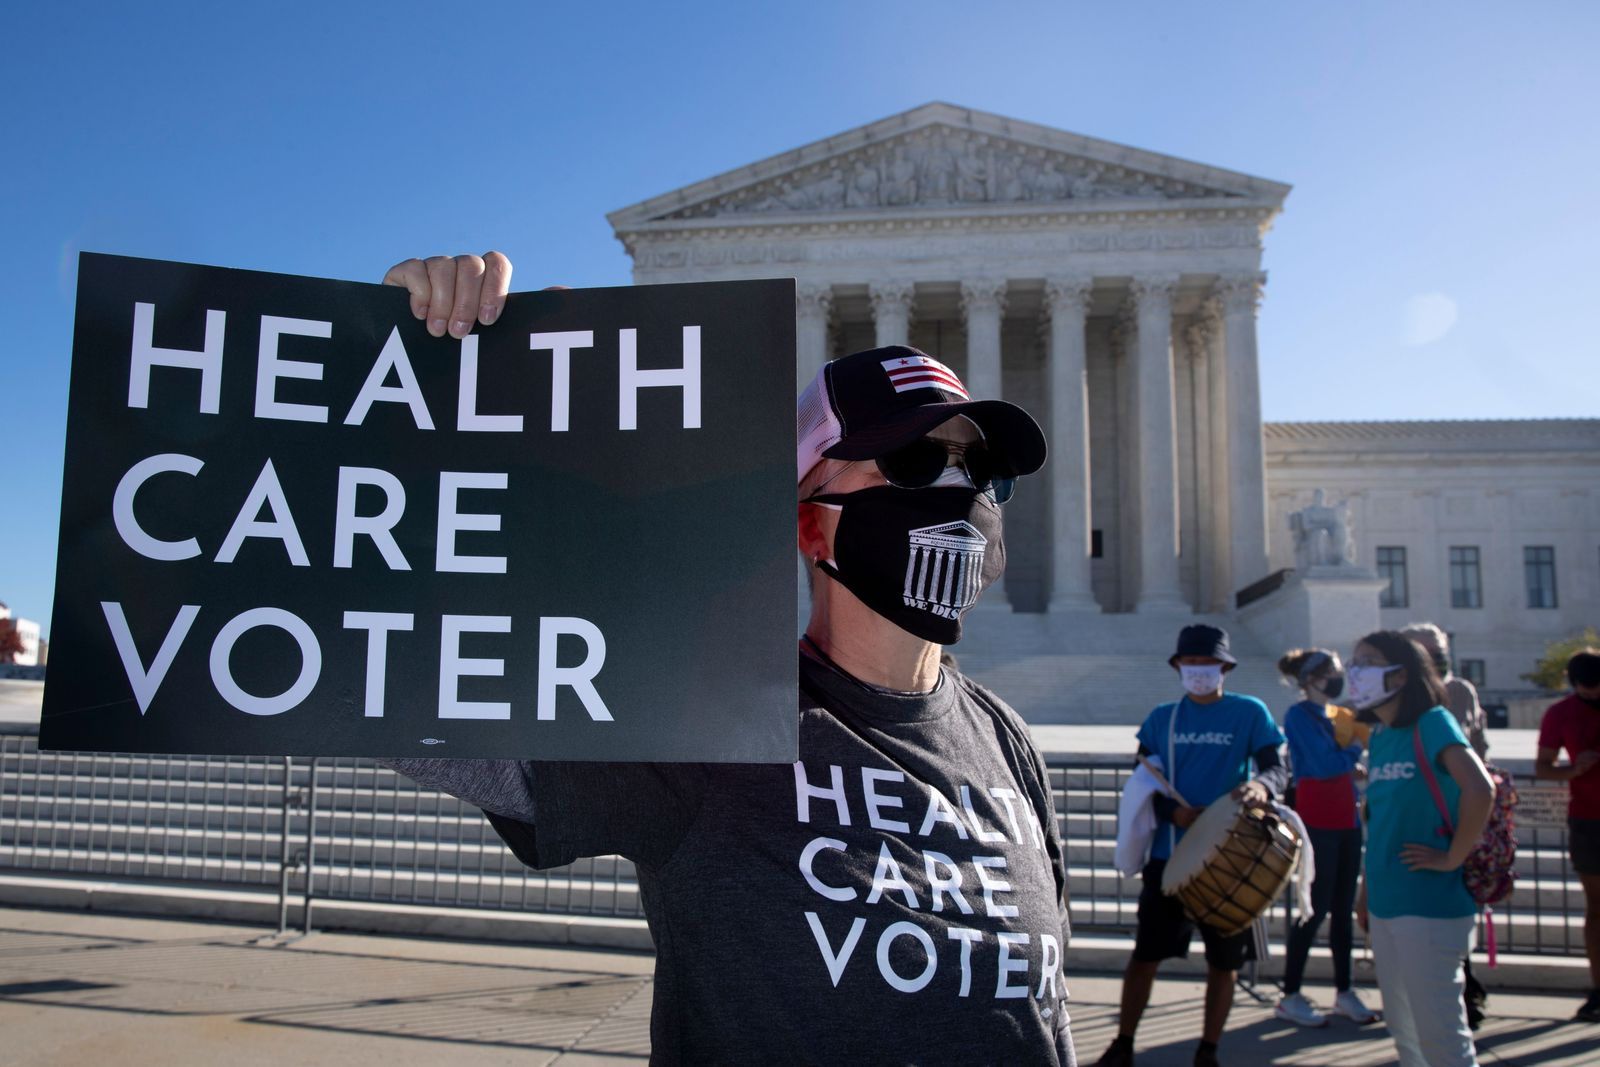 Supporters of the Affordable Care Act (ACA) demonstrate outside the US Supreme Court, Washington, USA - 10 Nov 2020